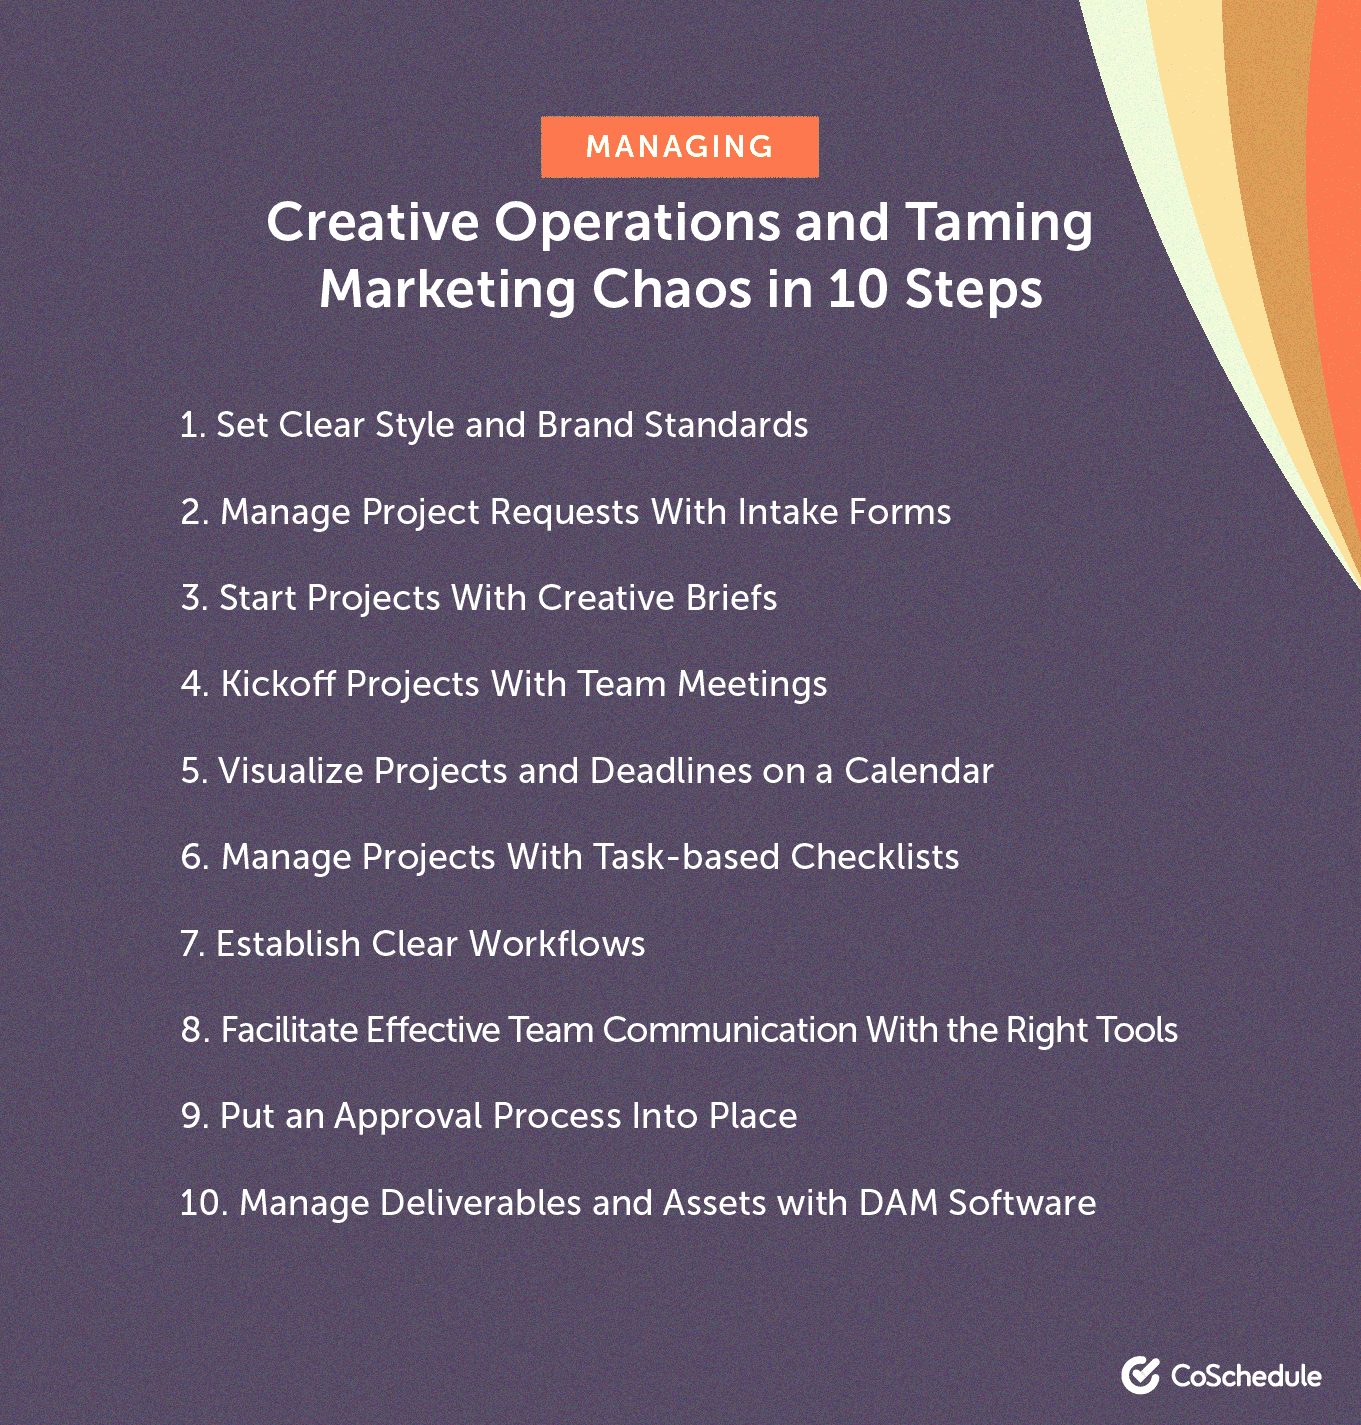 Managing creative operations in 10 steps